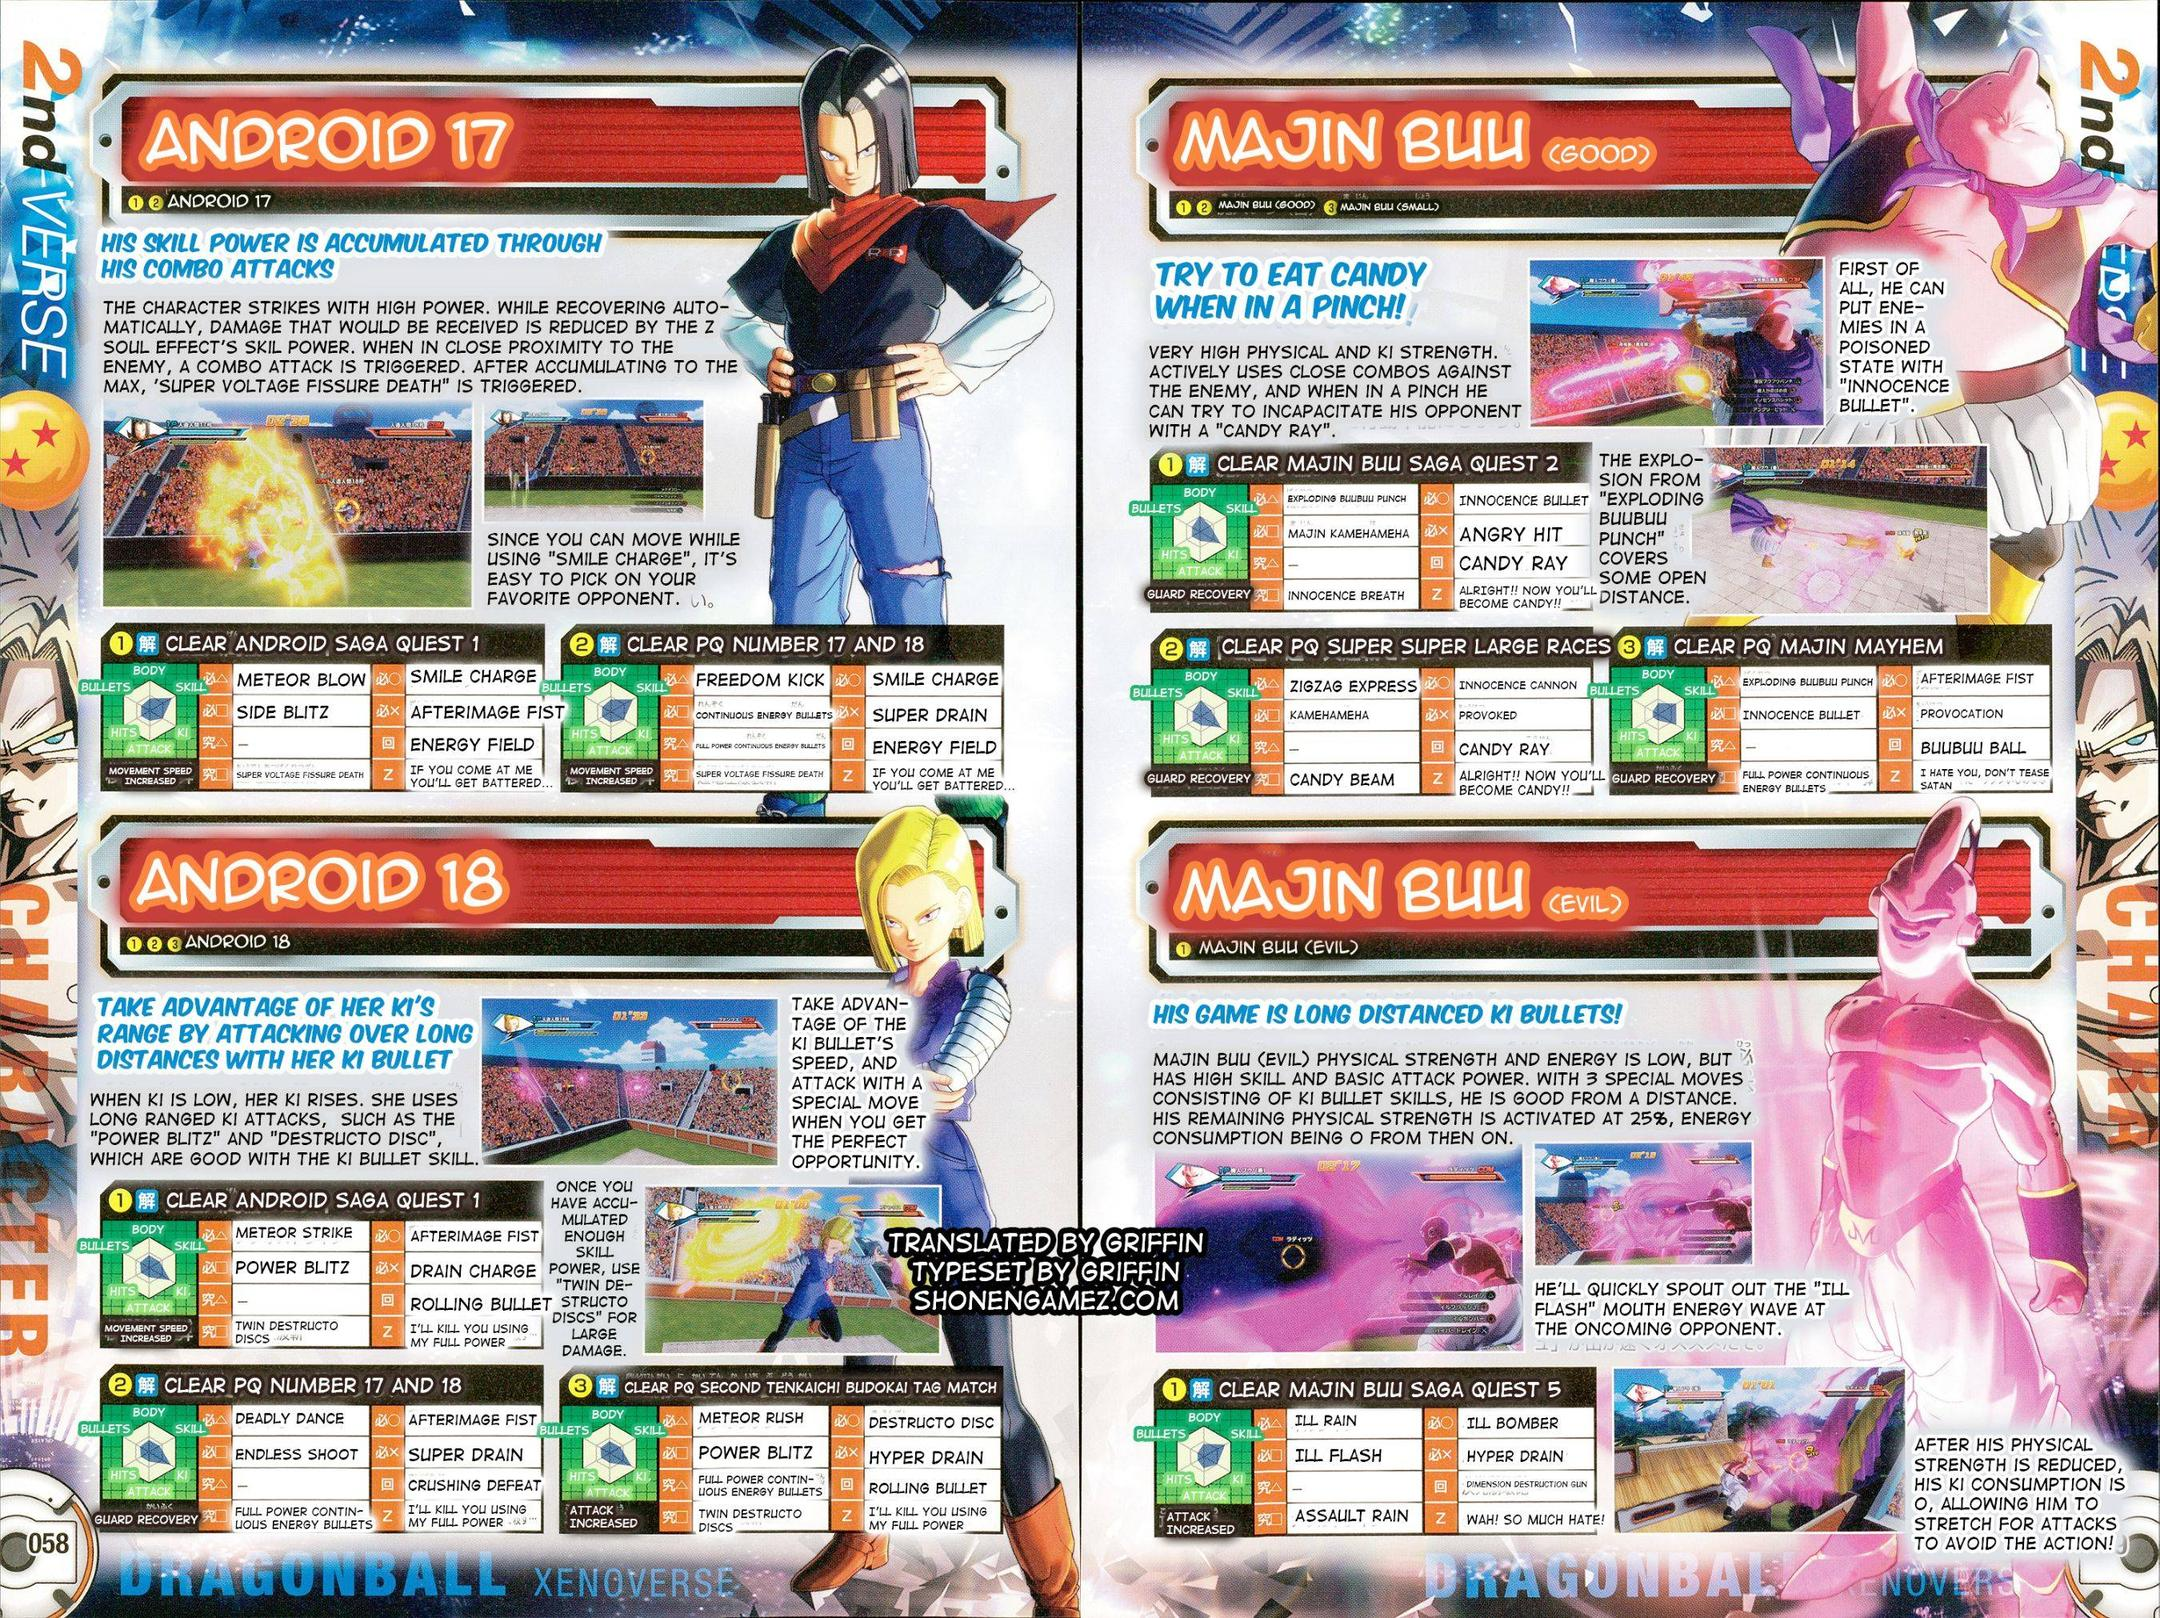 dragon ball fusions character unlock guide